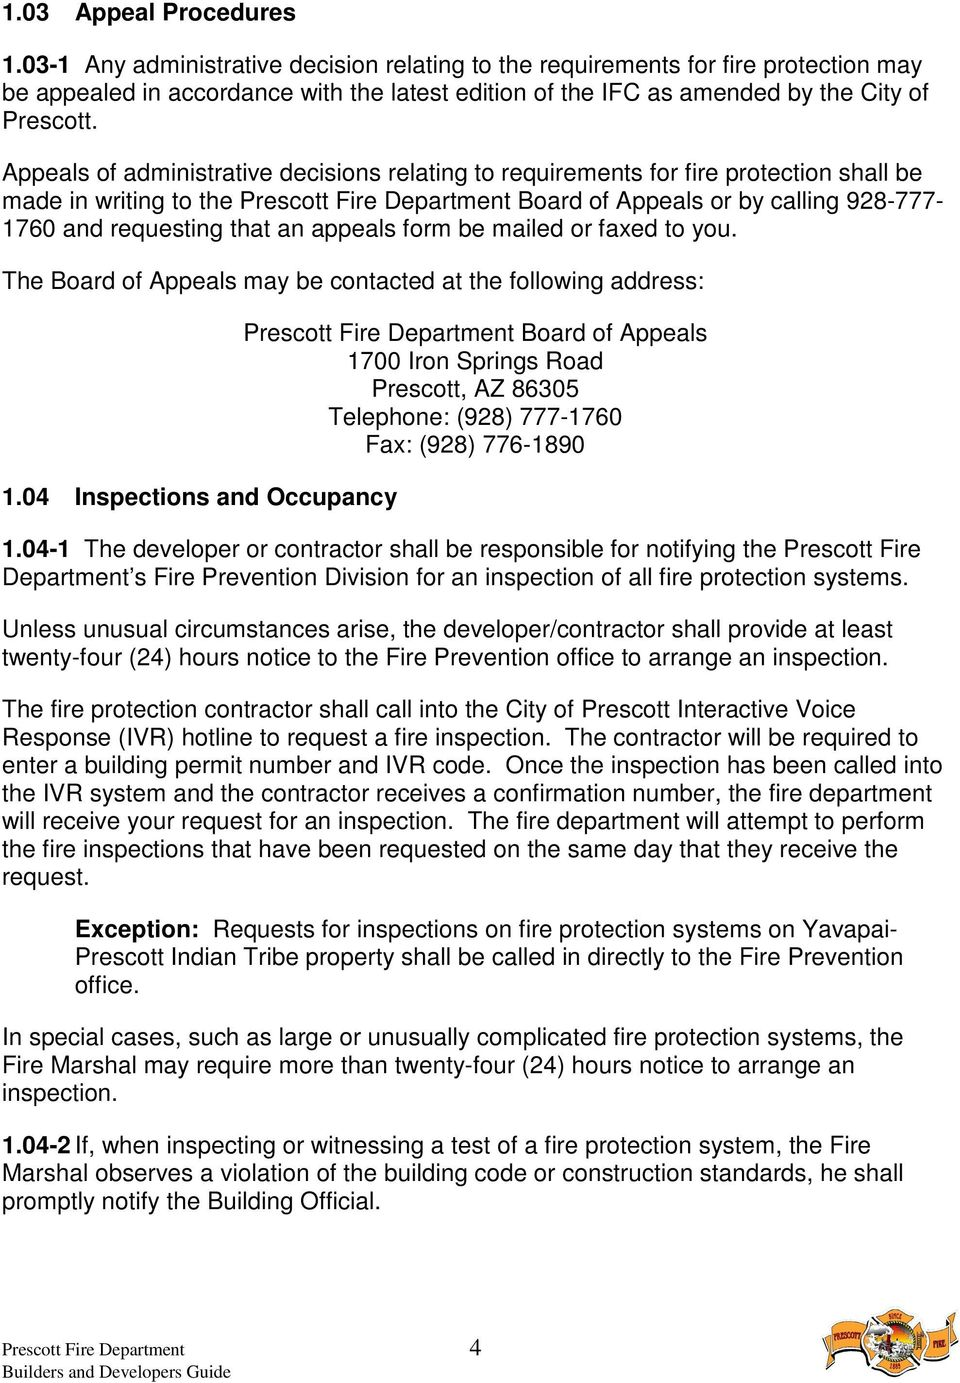 Fire Proection Guidelines Pdf